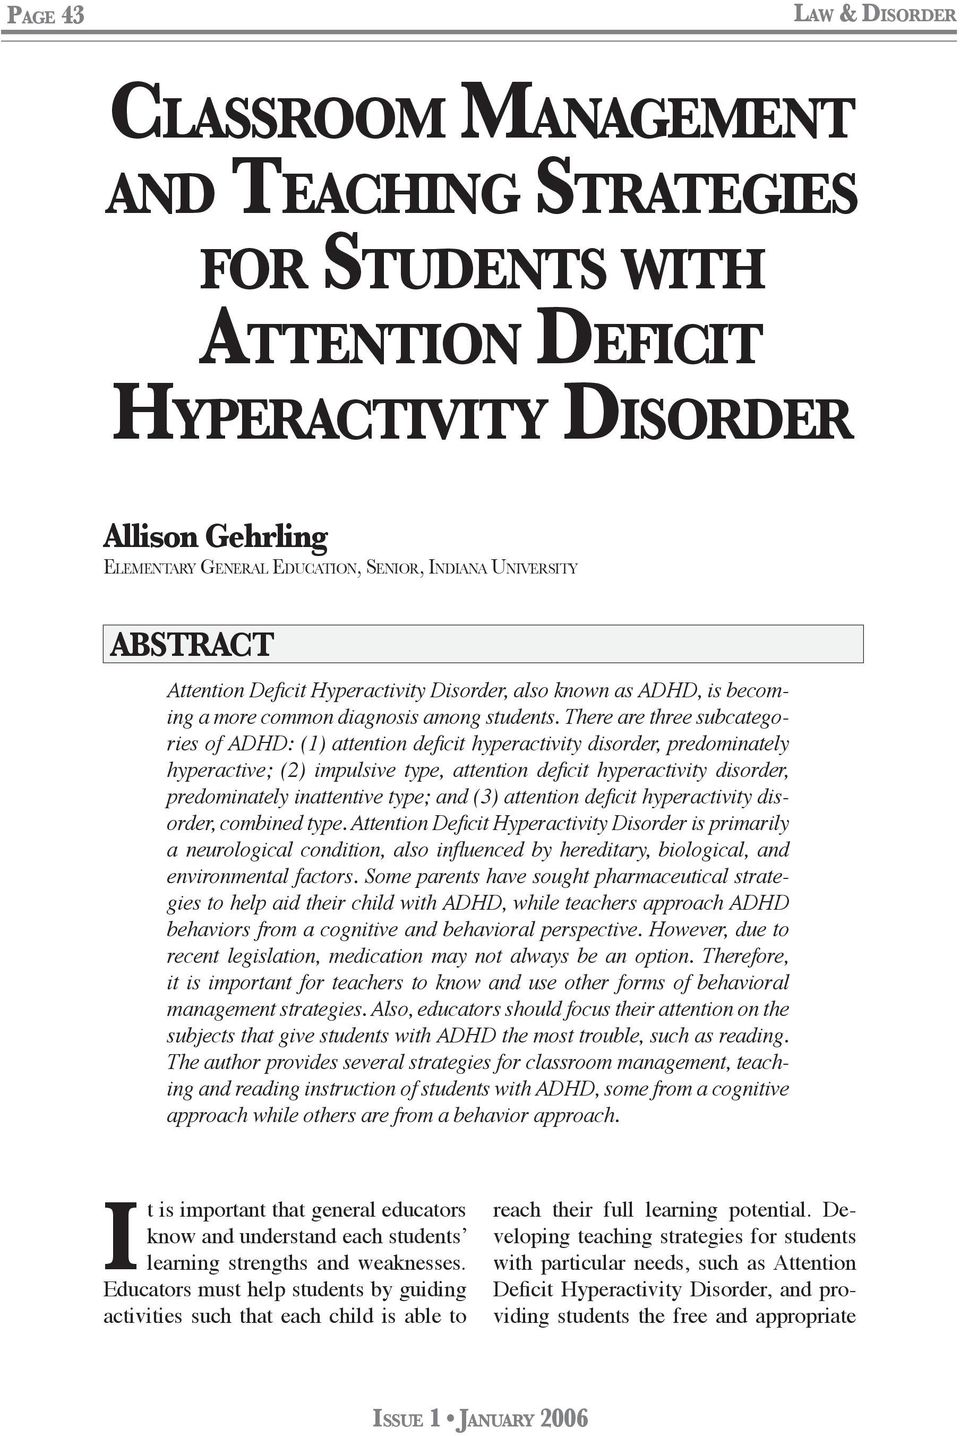 There are three subcategories of ADHD: (1) attention deficit hyperactivity disorder, predominately hyperactive; (2) impulsive type, attention deficit hyperactivity disorder, predominately inattentive